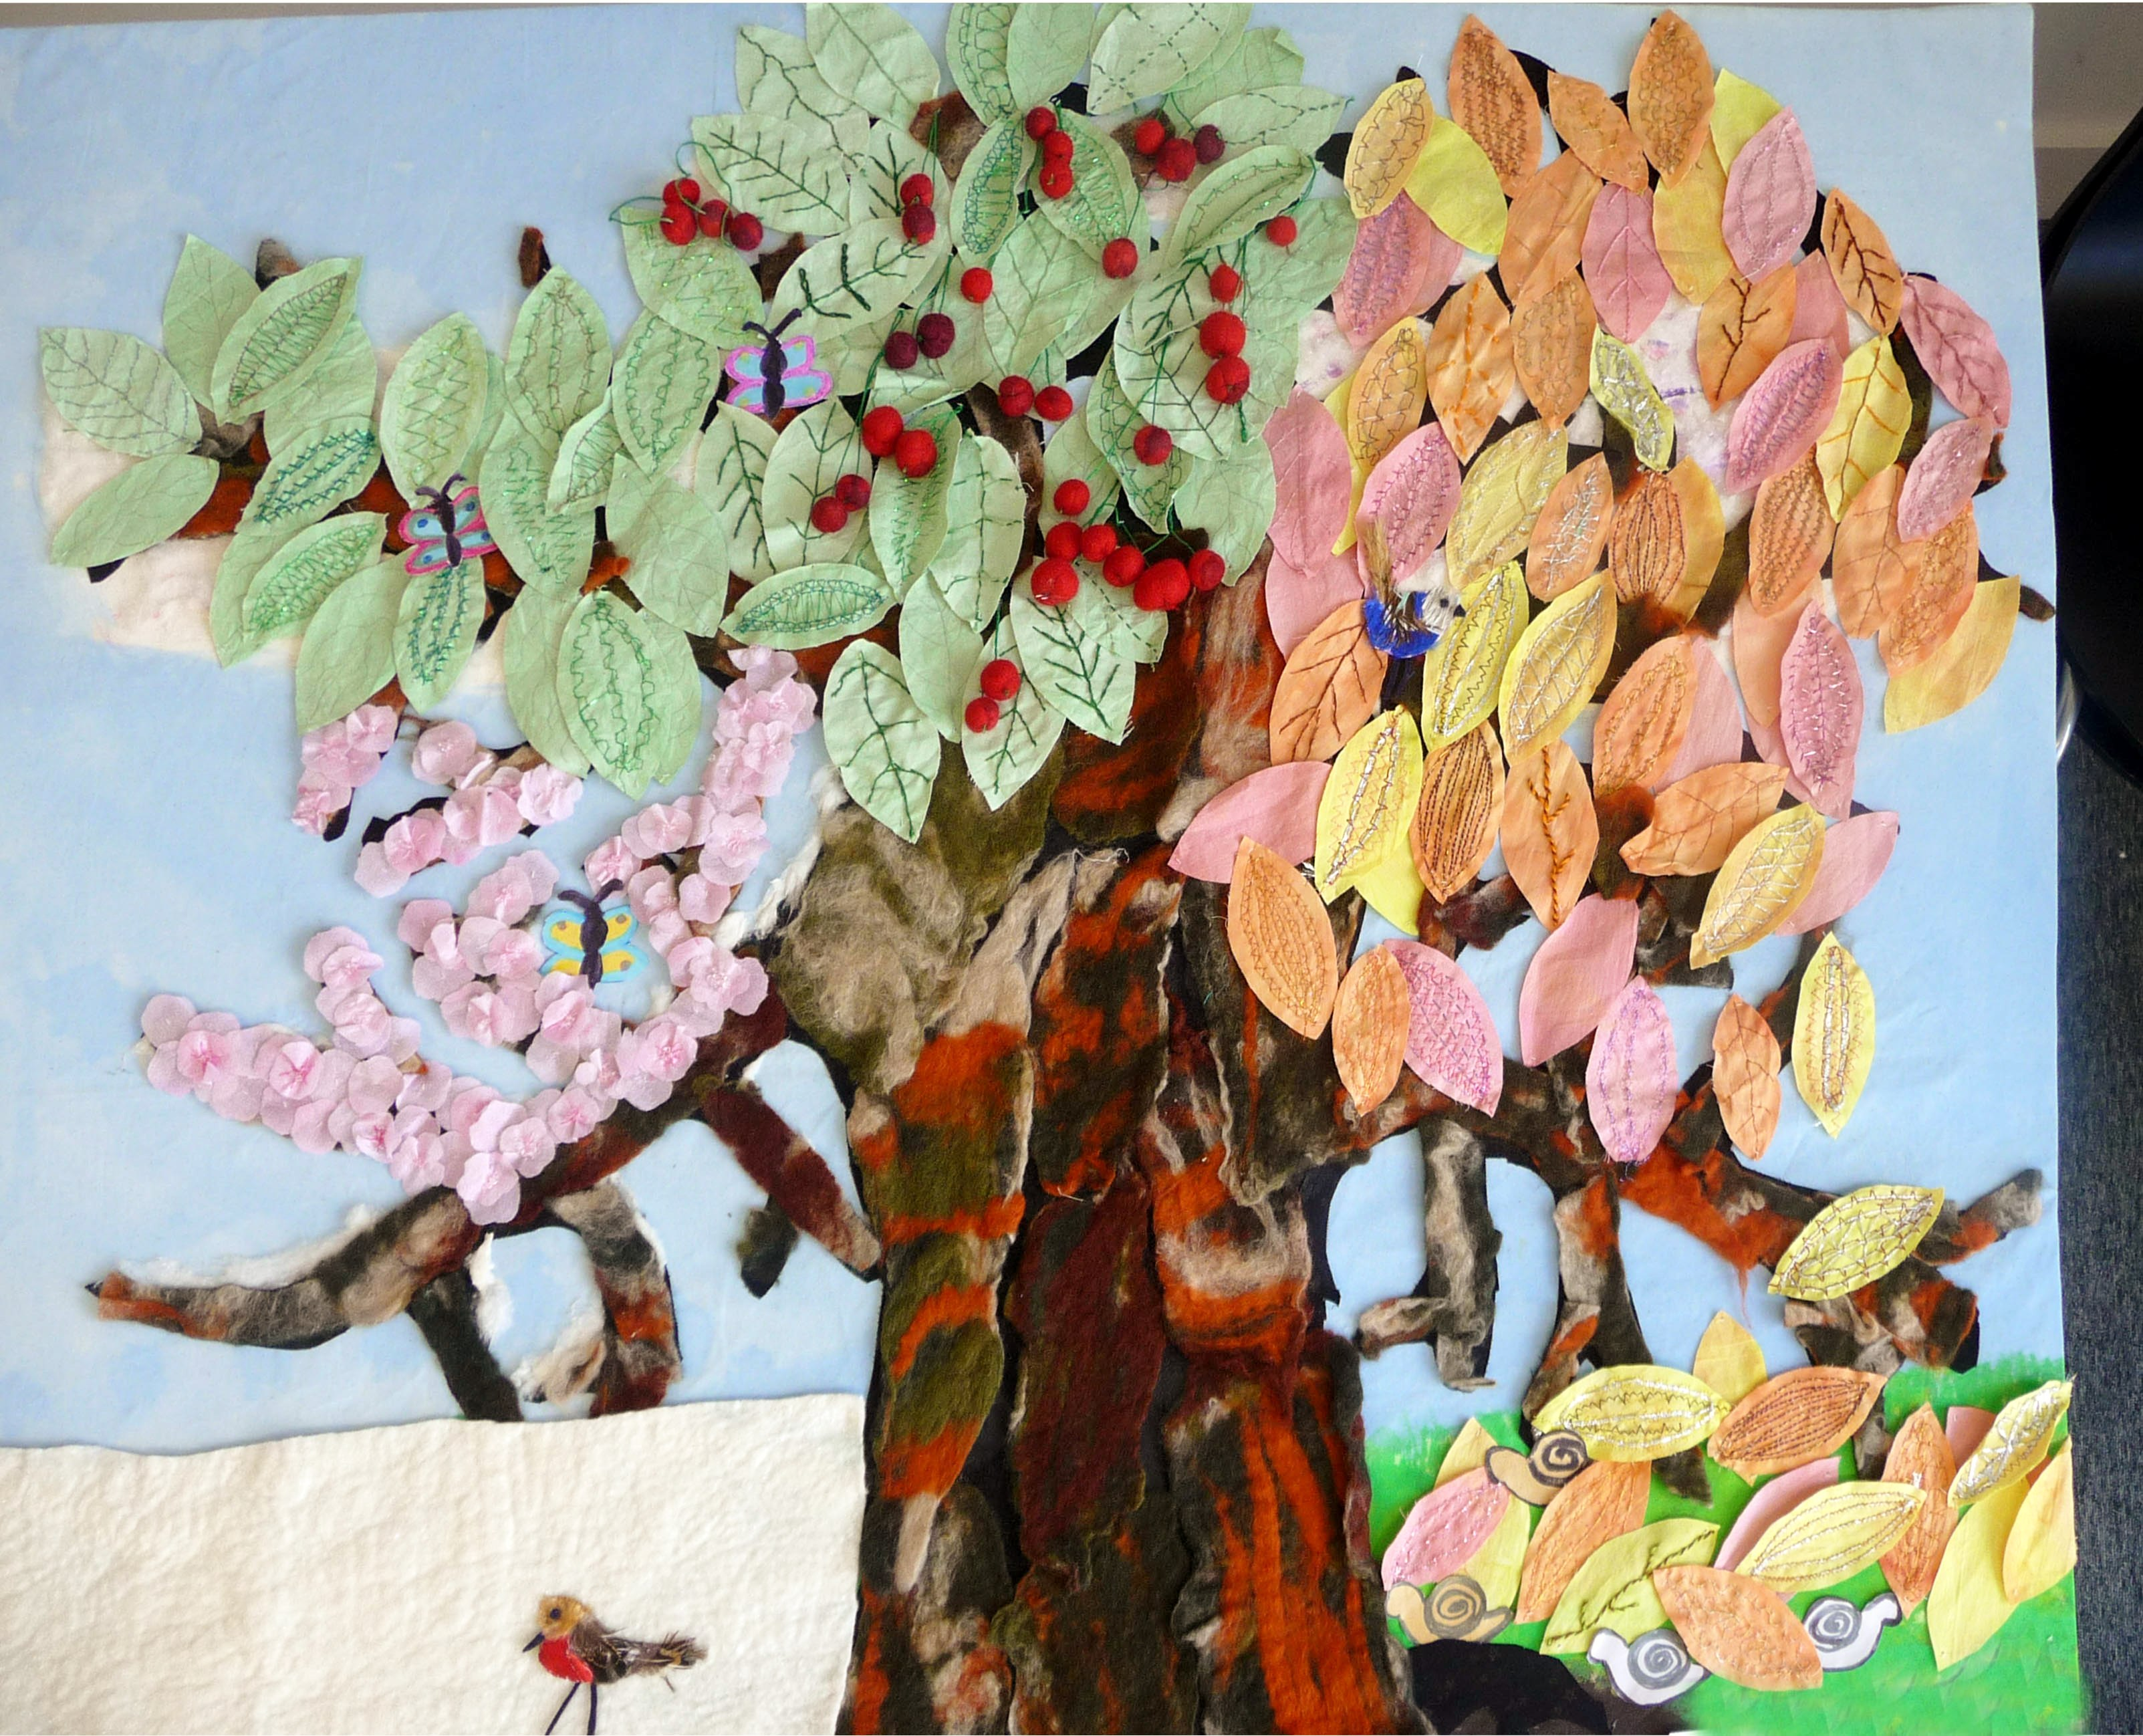 CHERRY - A TREE FOR ALL SEASONS by Wirral YE, DeDenne Comp 3rd Prize Winner 2013-2014